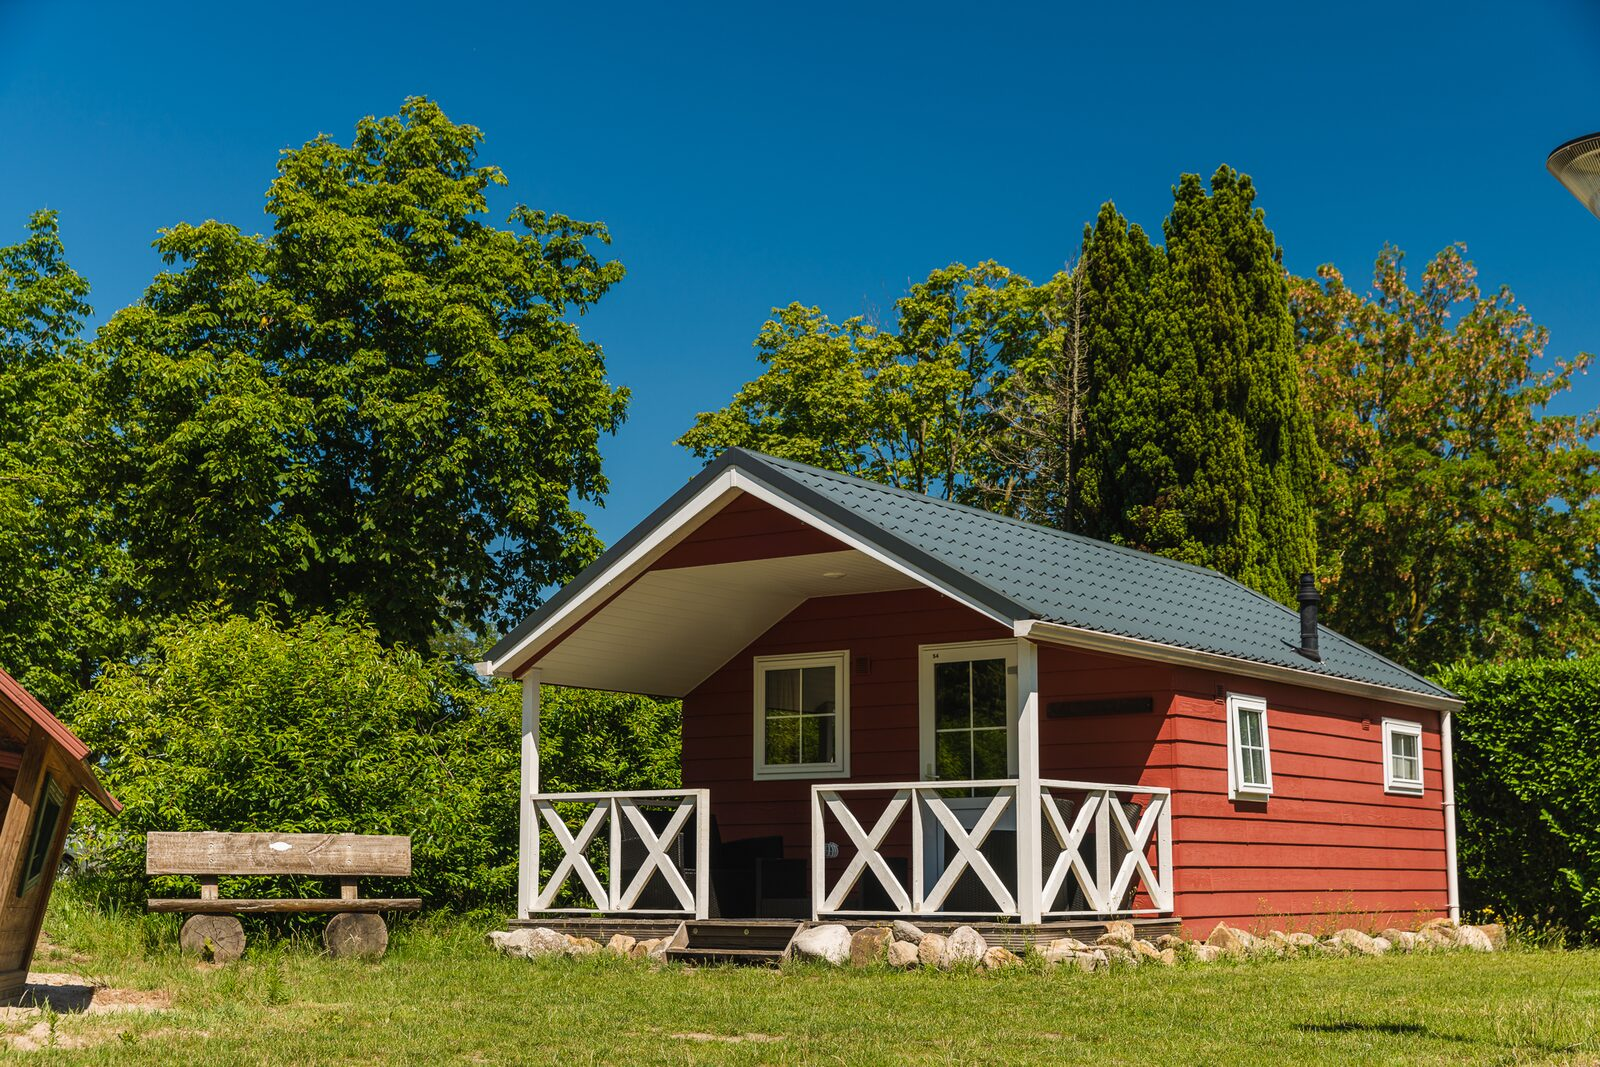 Scandinavian lodges